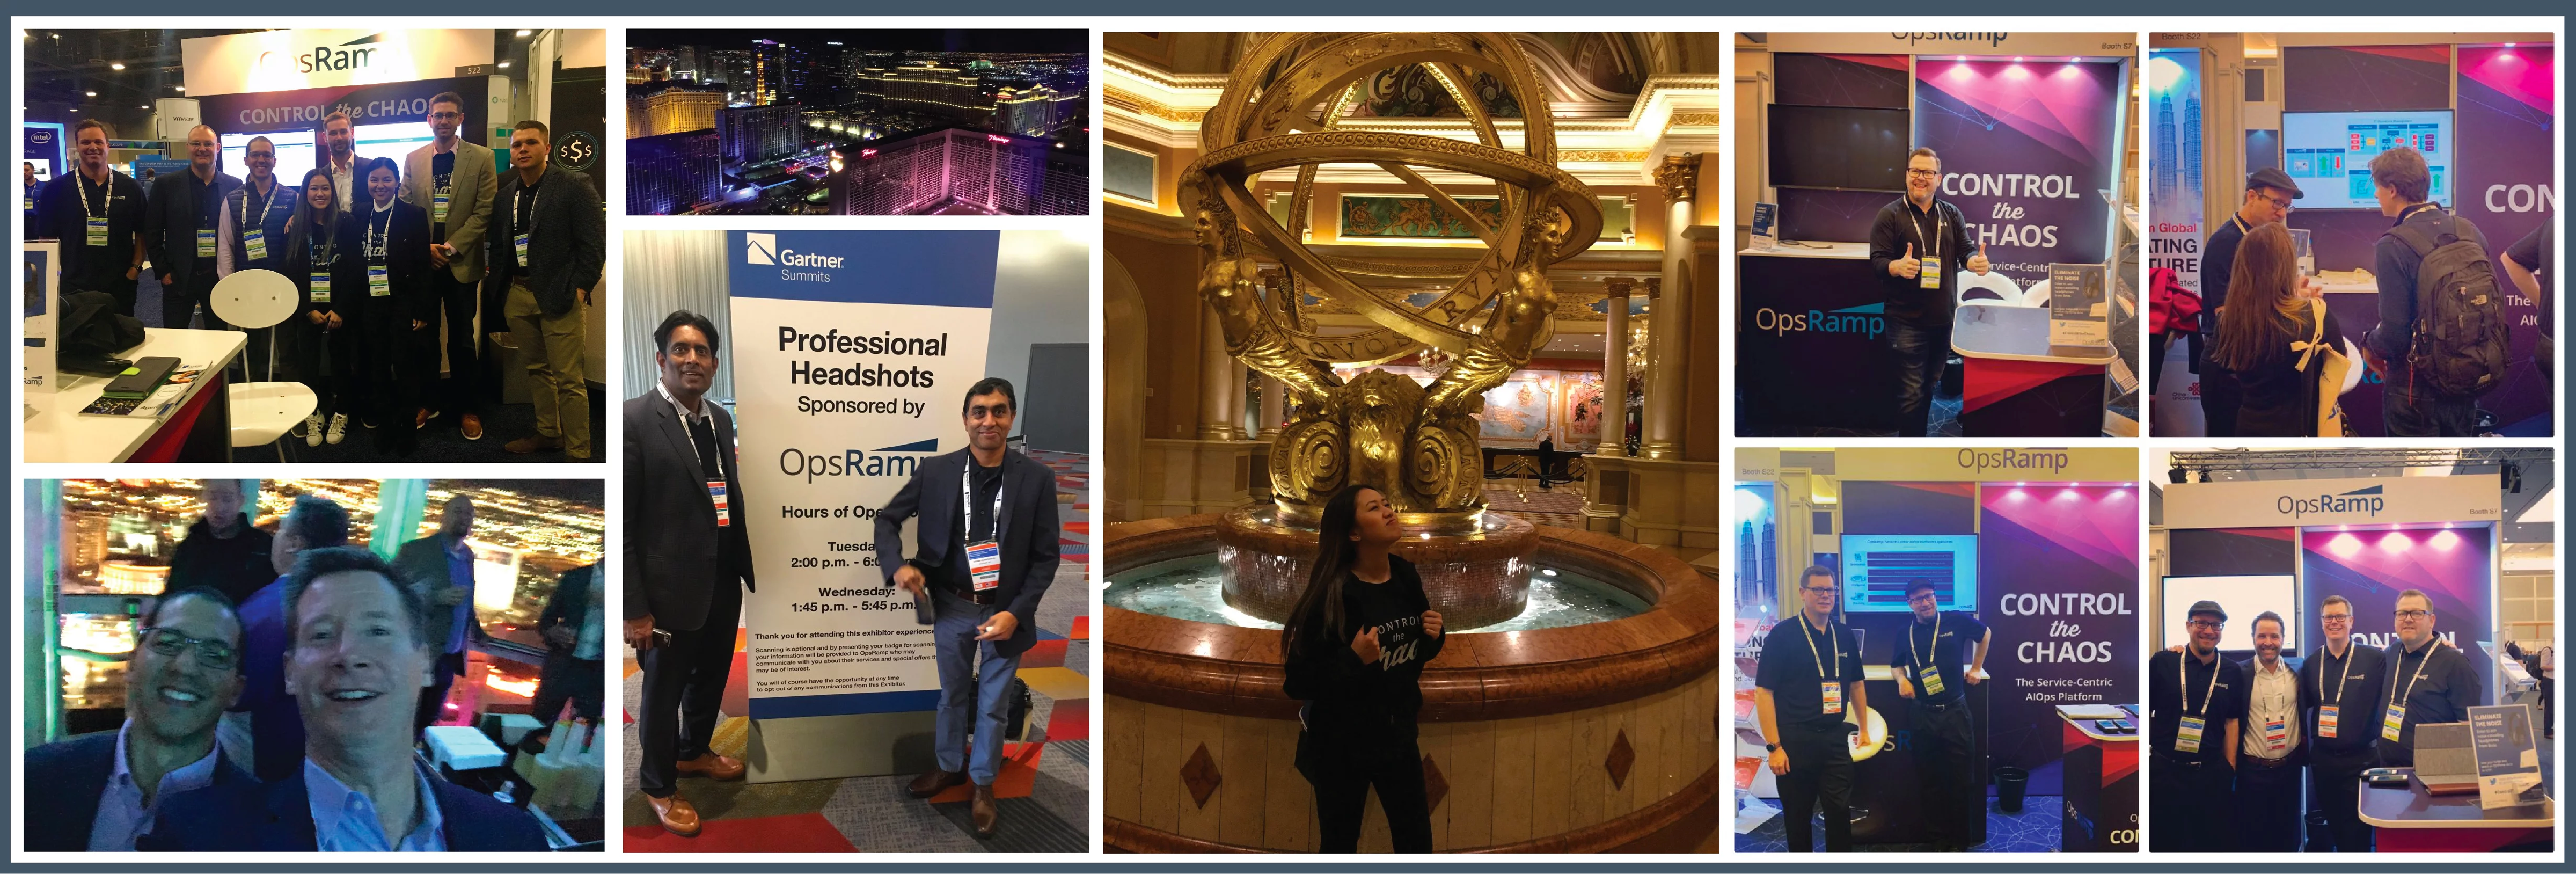 OpsRamp at Gartner IOCS London and Las Vegas